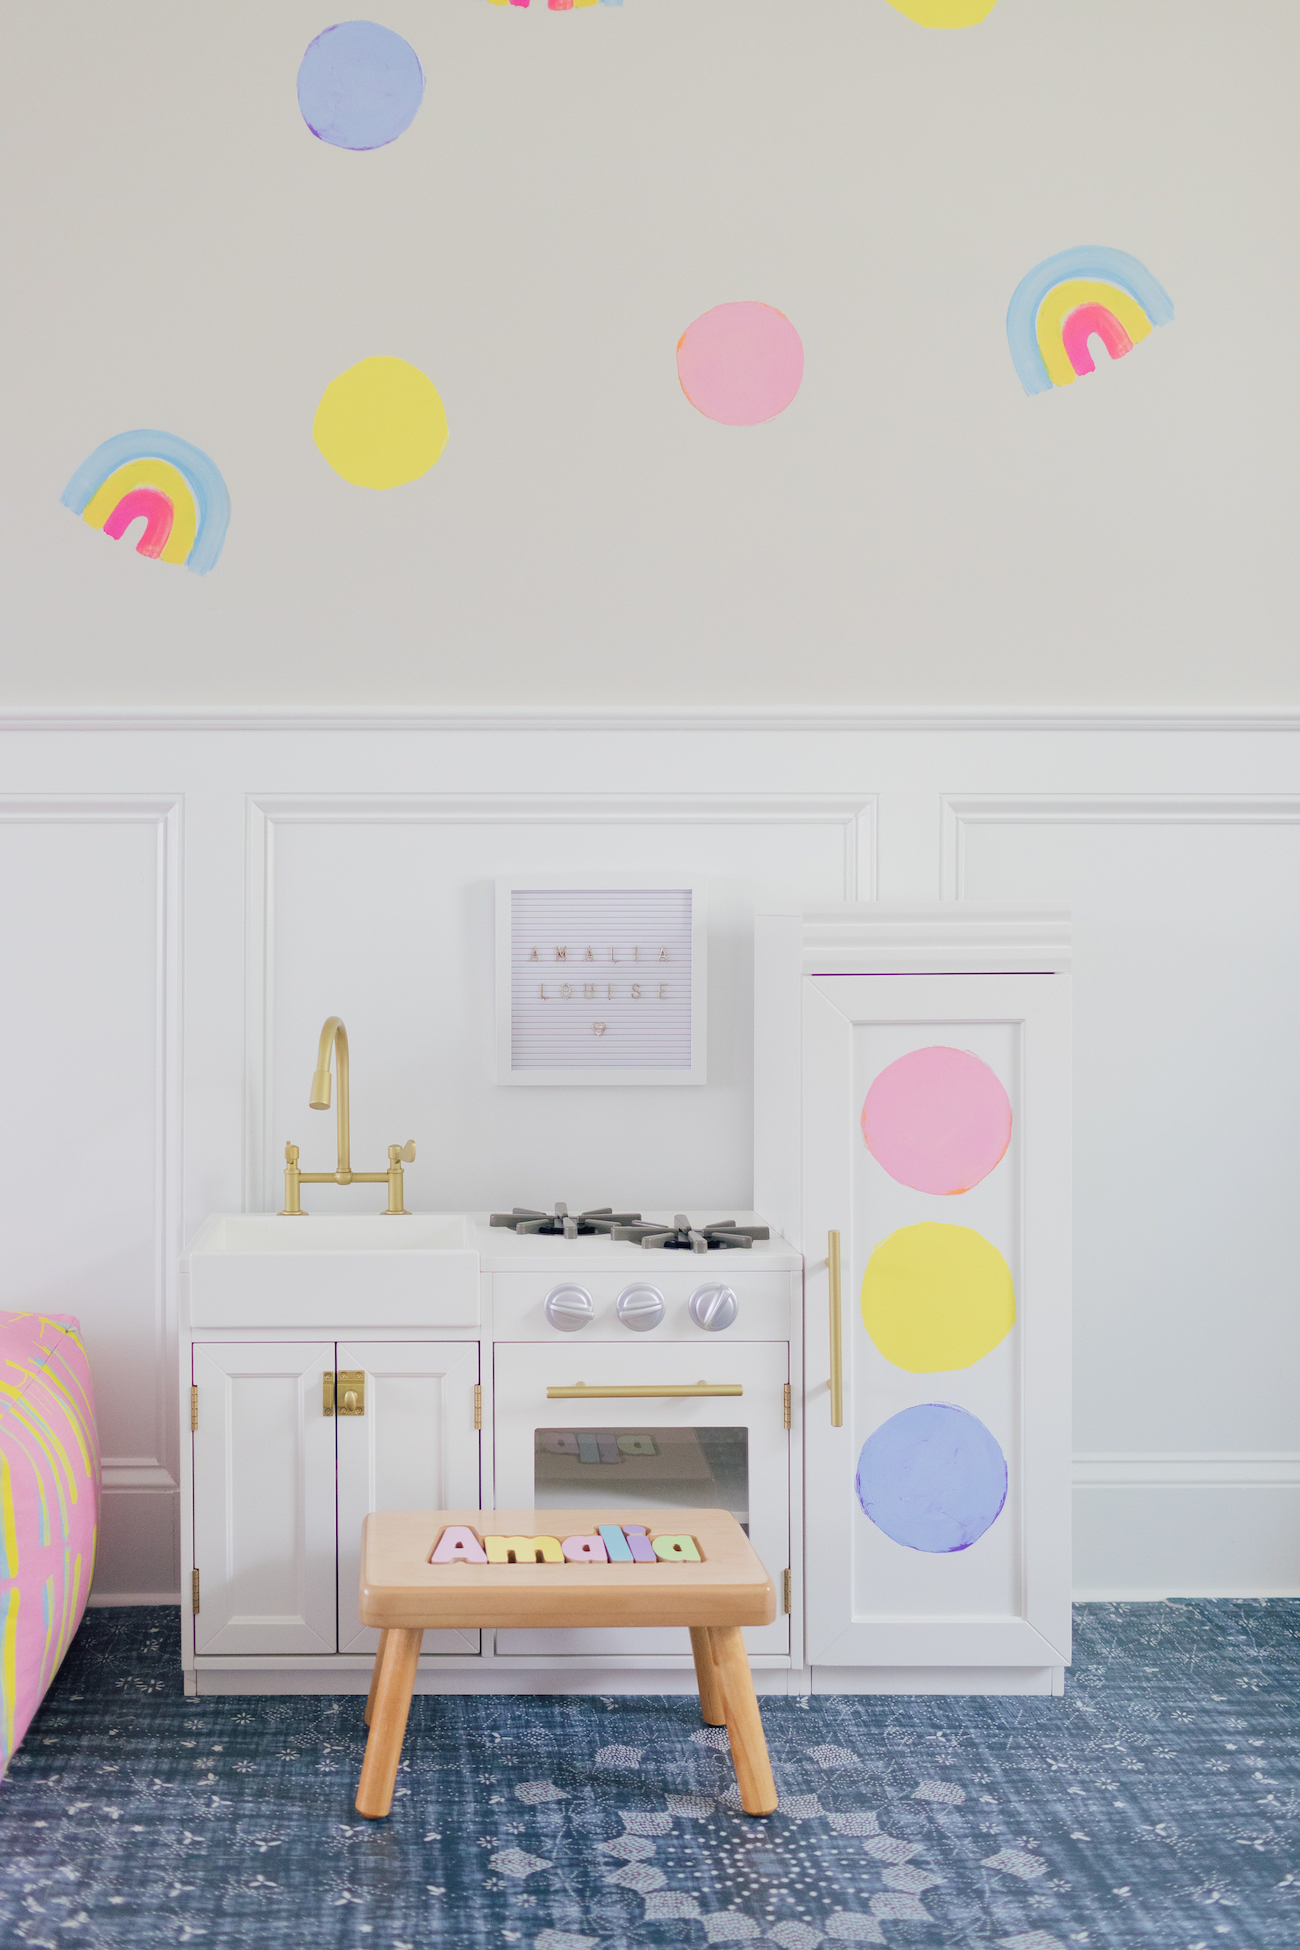 Adding Some Color with Paperless Wallpaper - Lemon Stripes